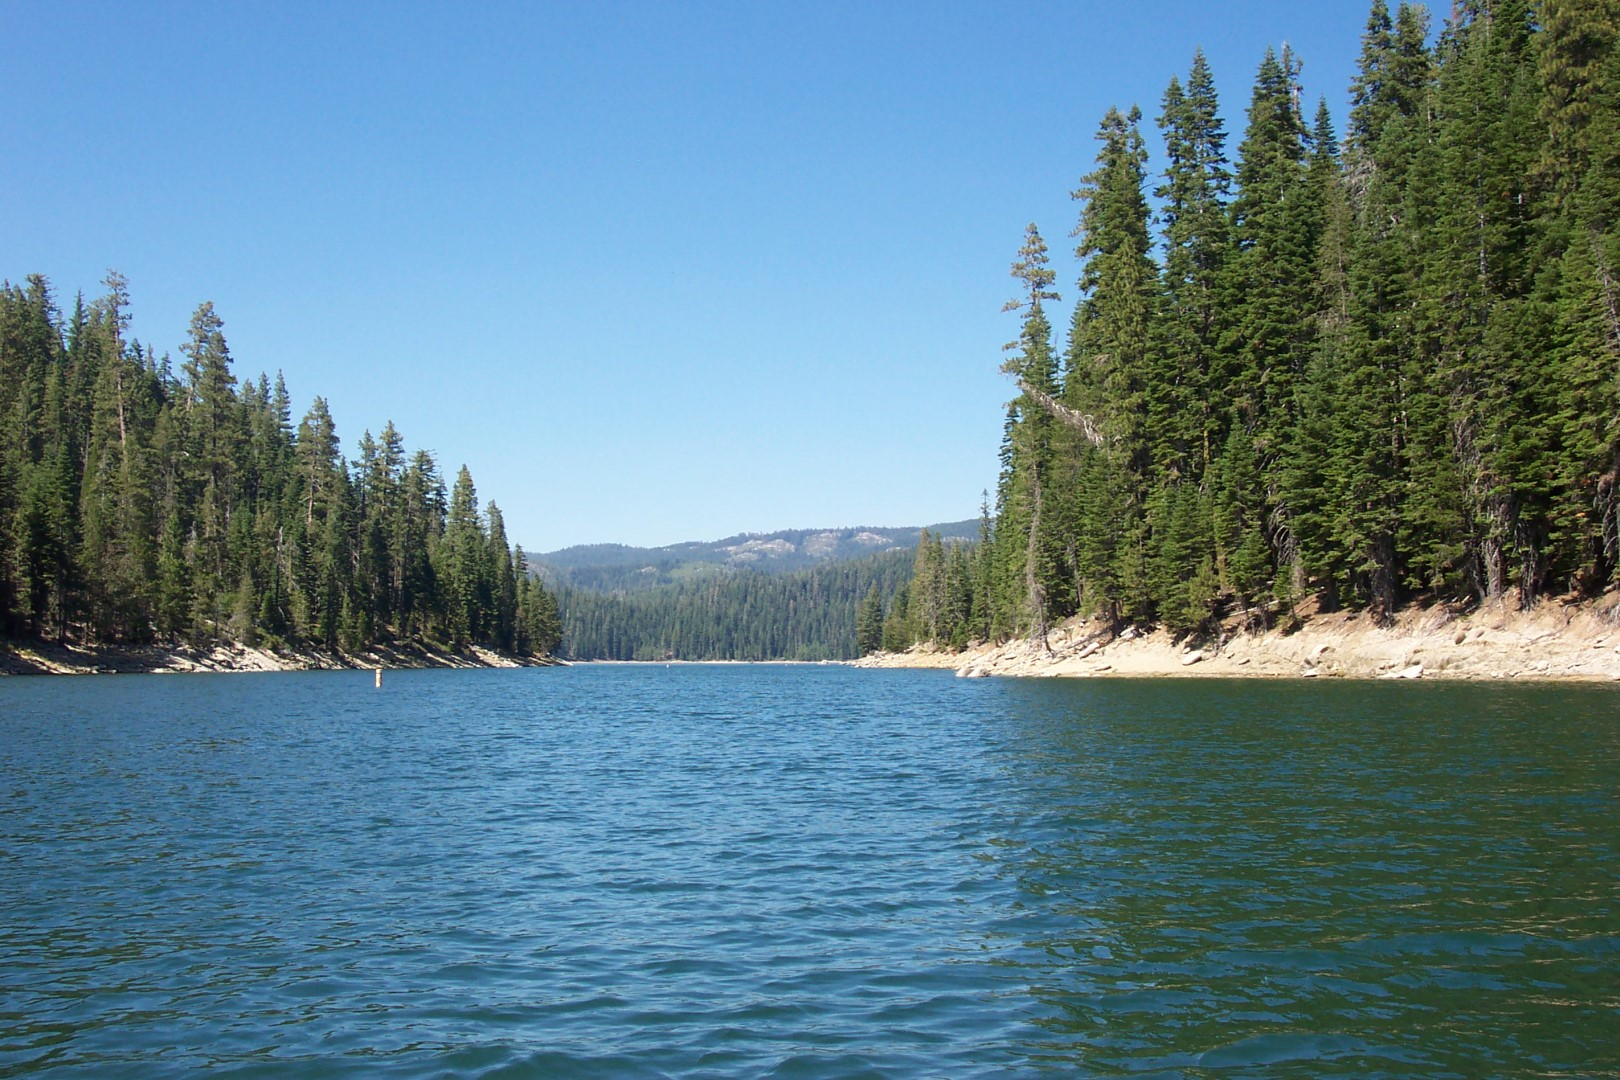 Bucks Lake CA, Davis and Frenchman